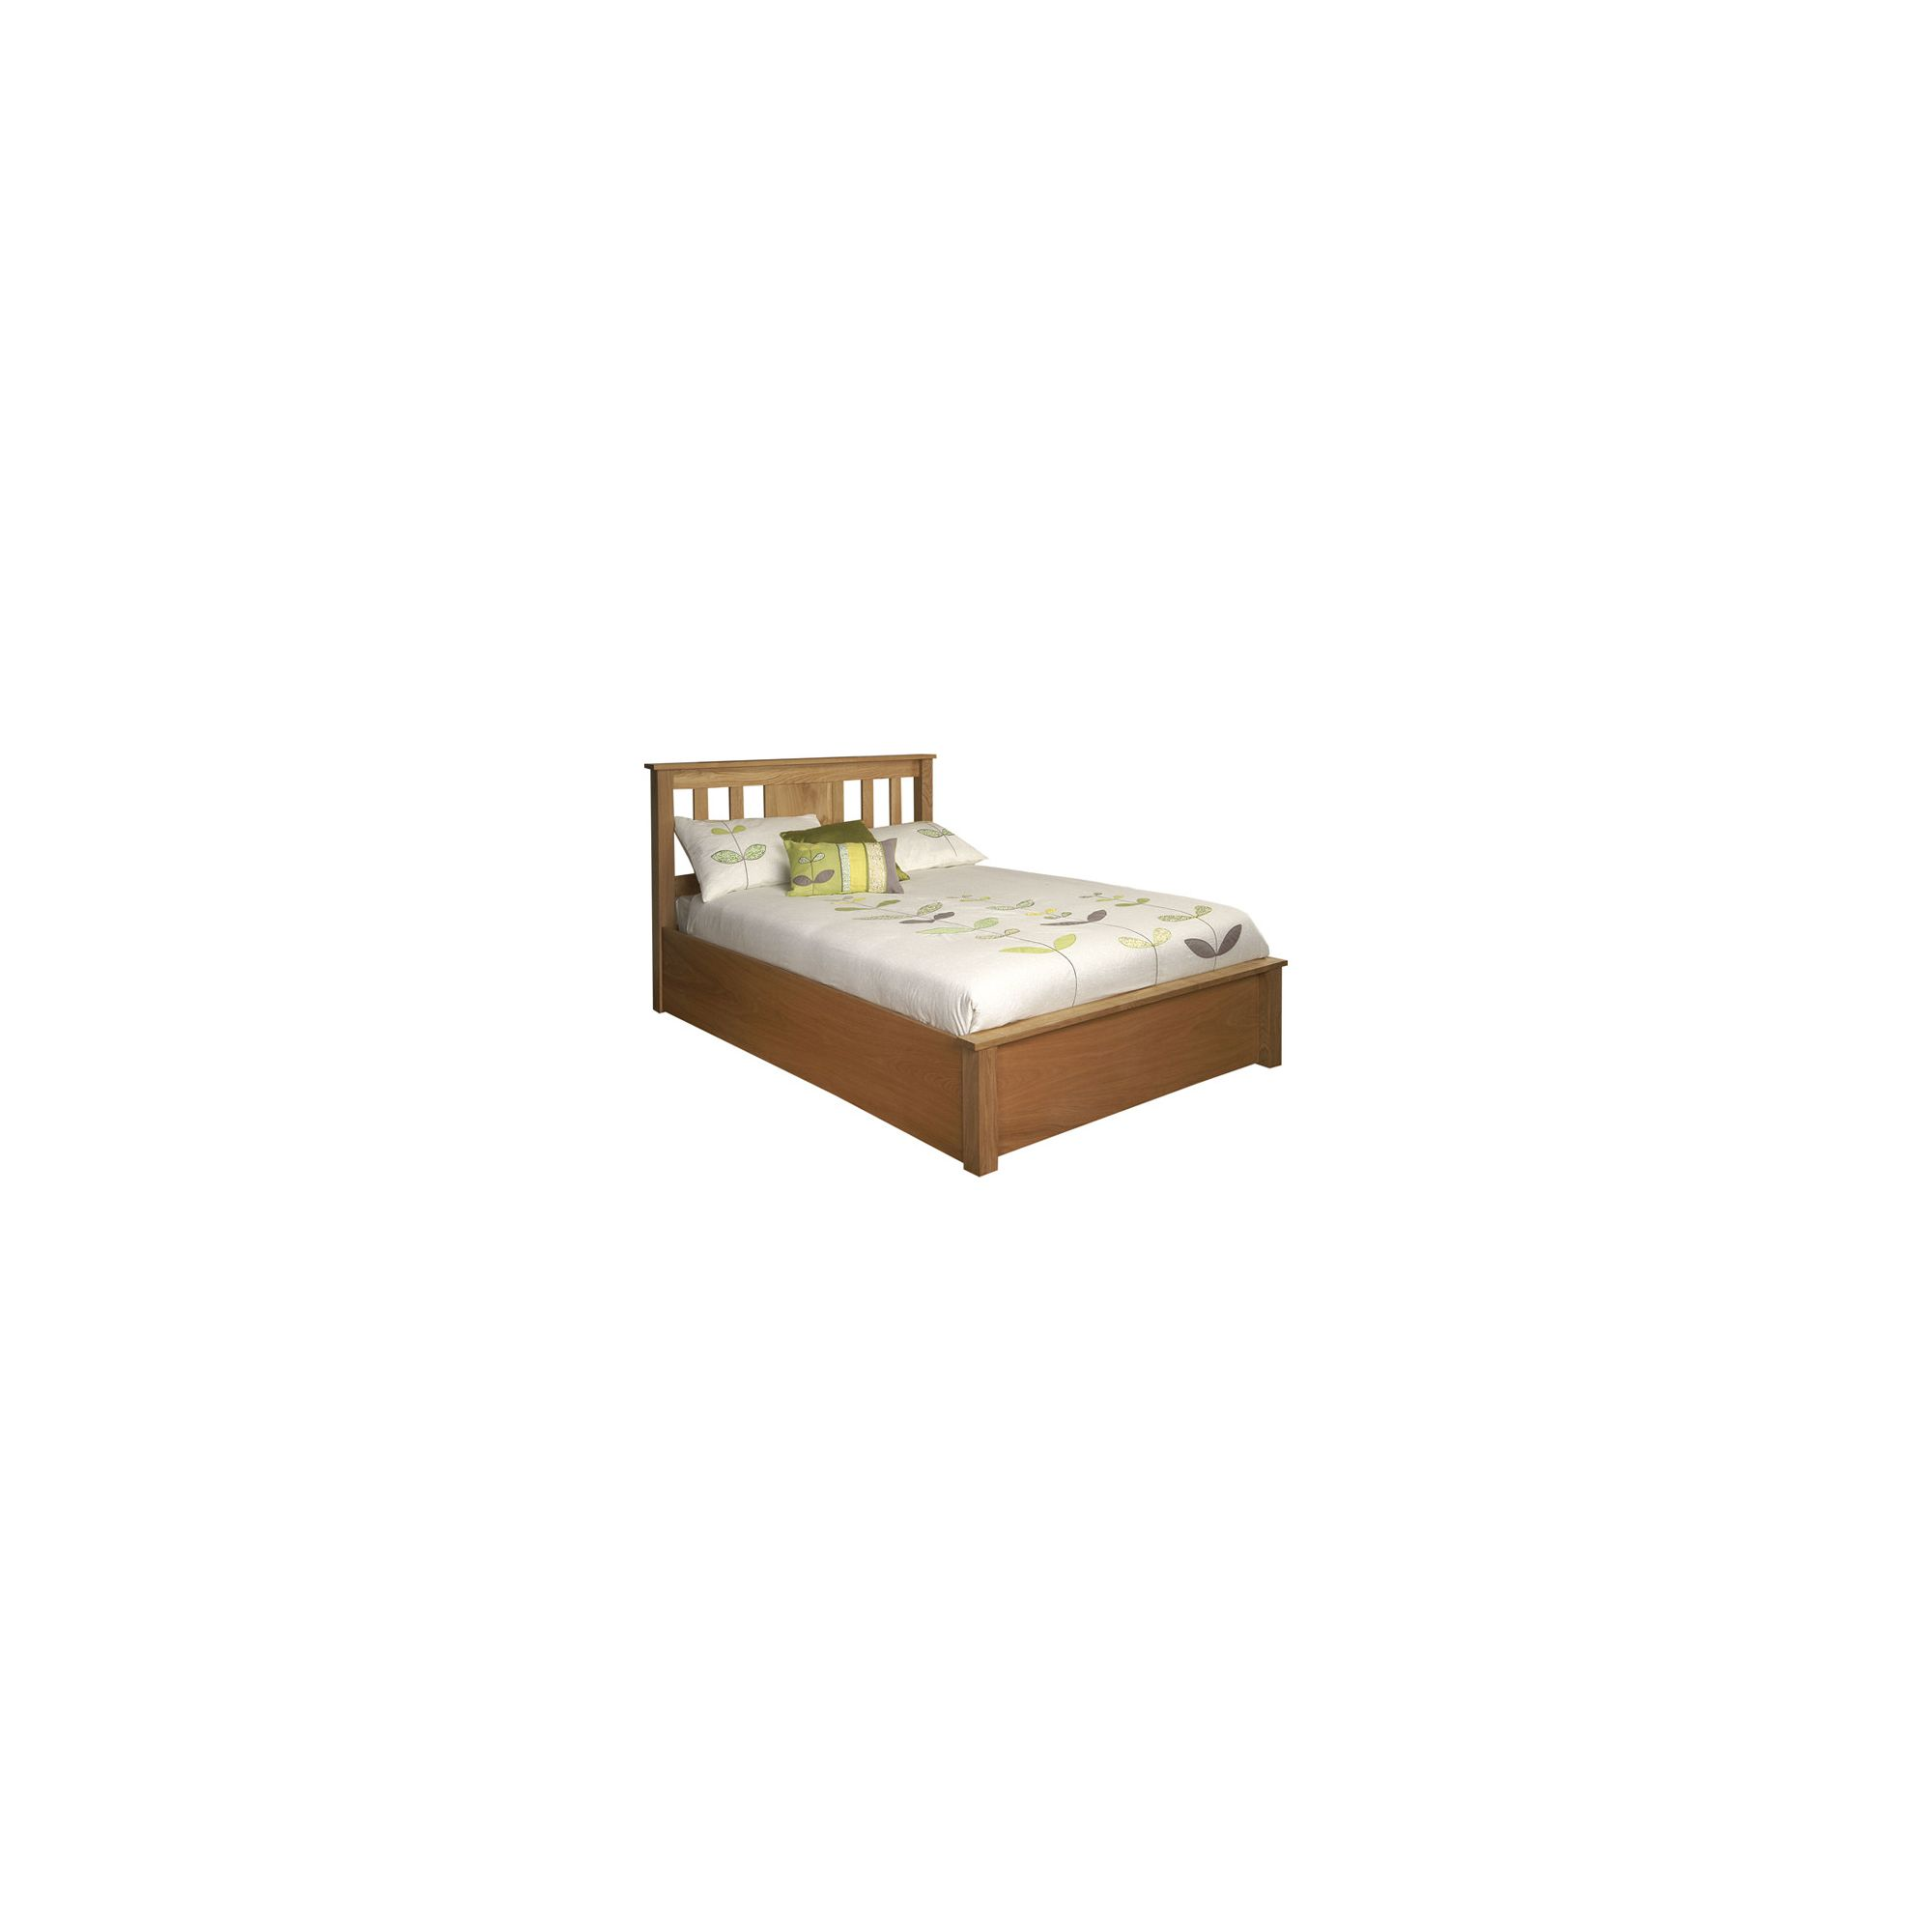 Limelight Terran Storage Bedstead - King at Tesco Direct